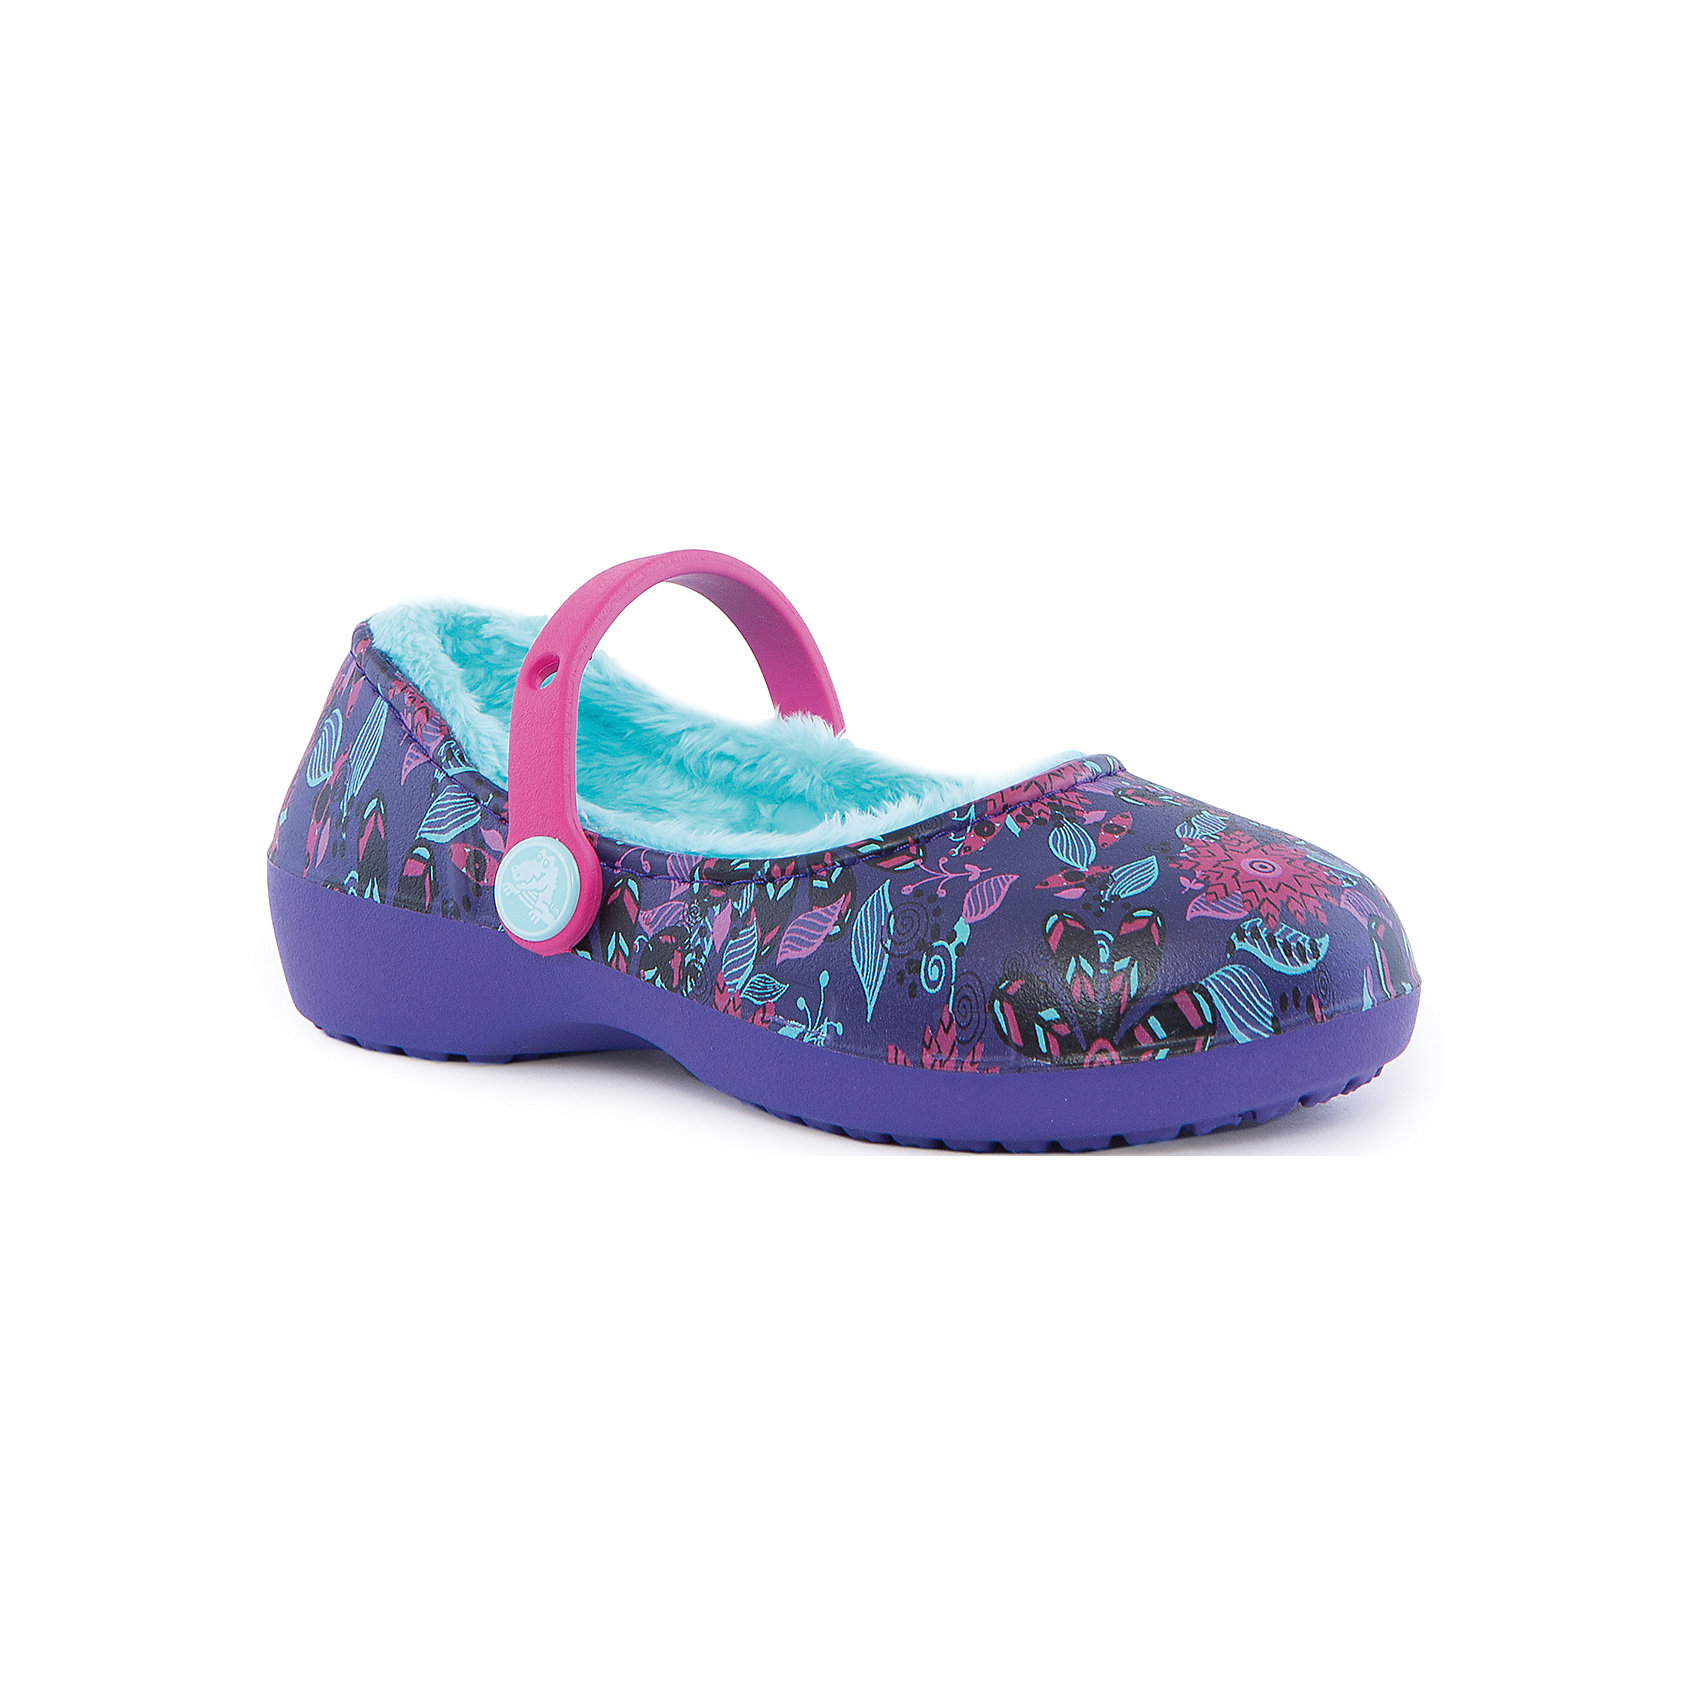 Сабо Karin Graphic Lined Clog для девочки Crocs